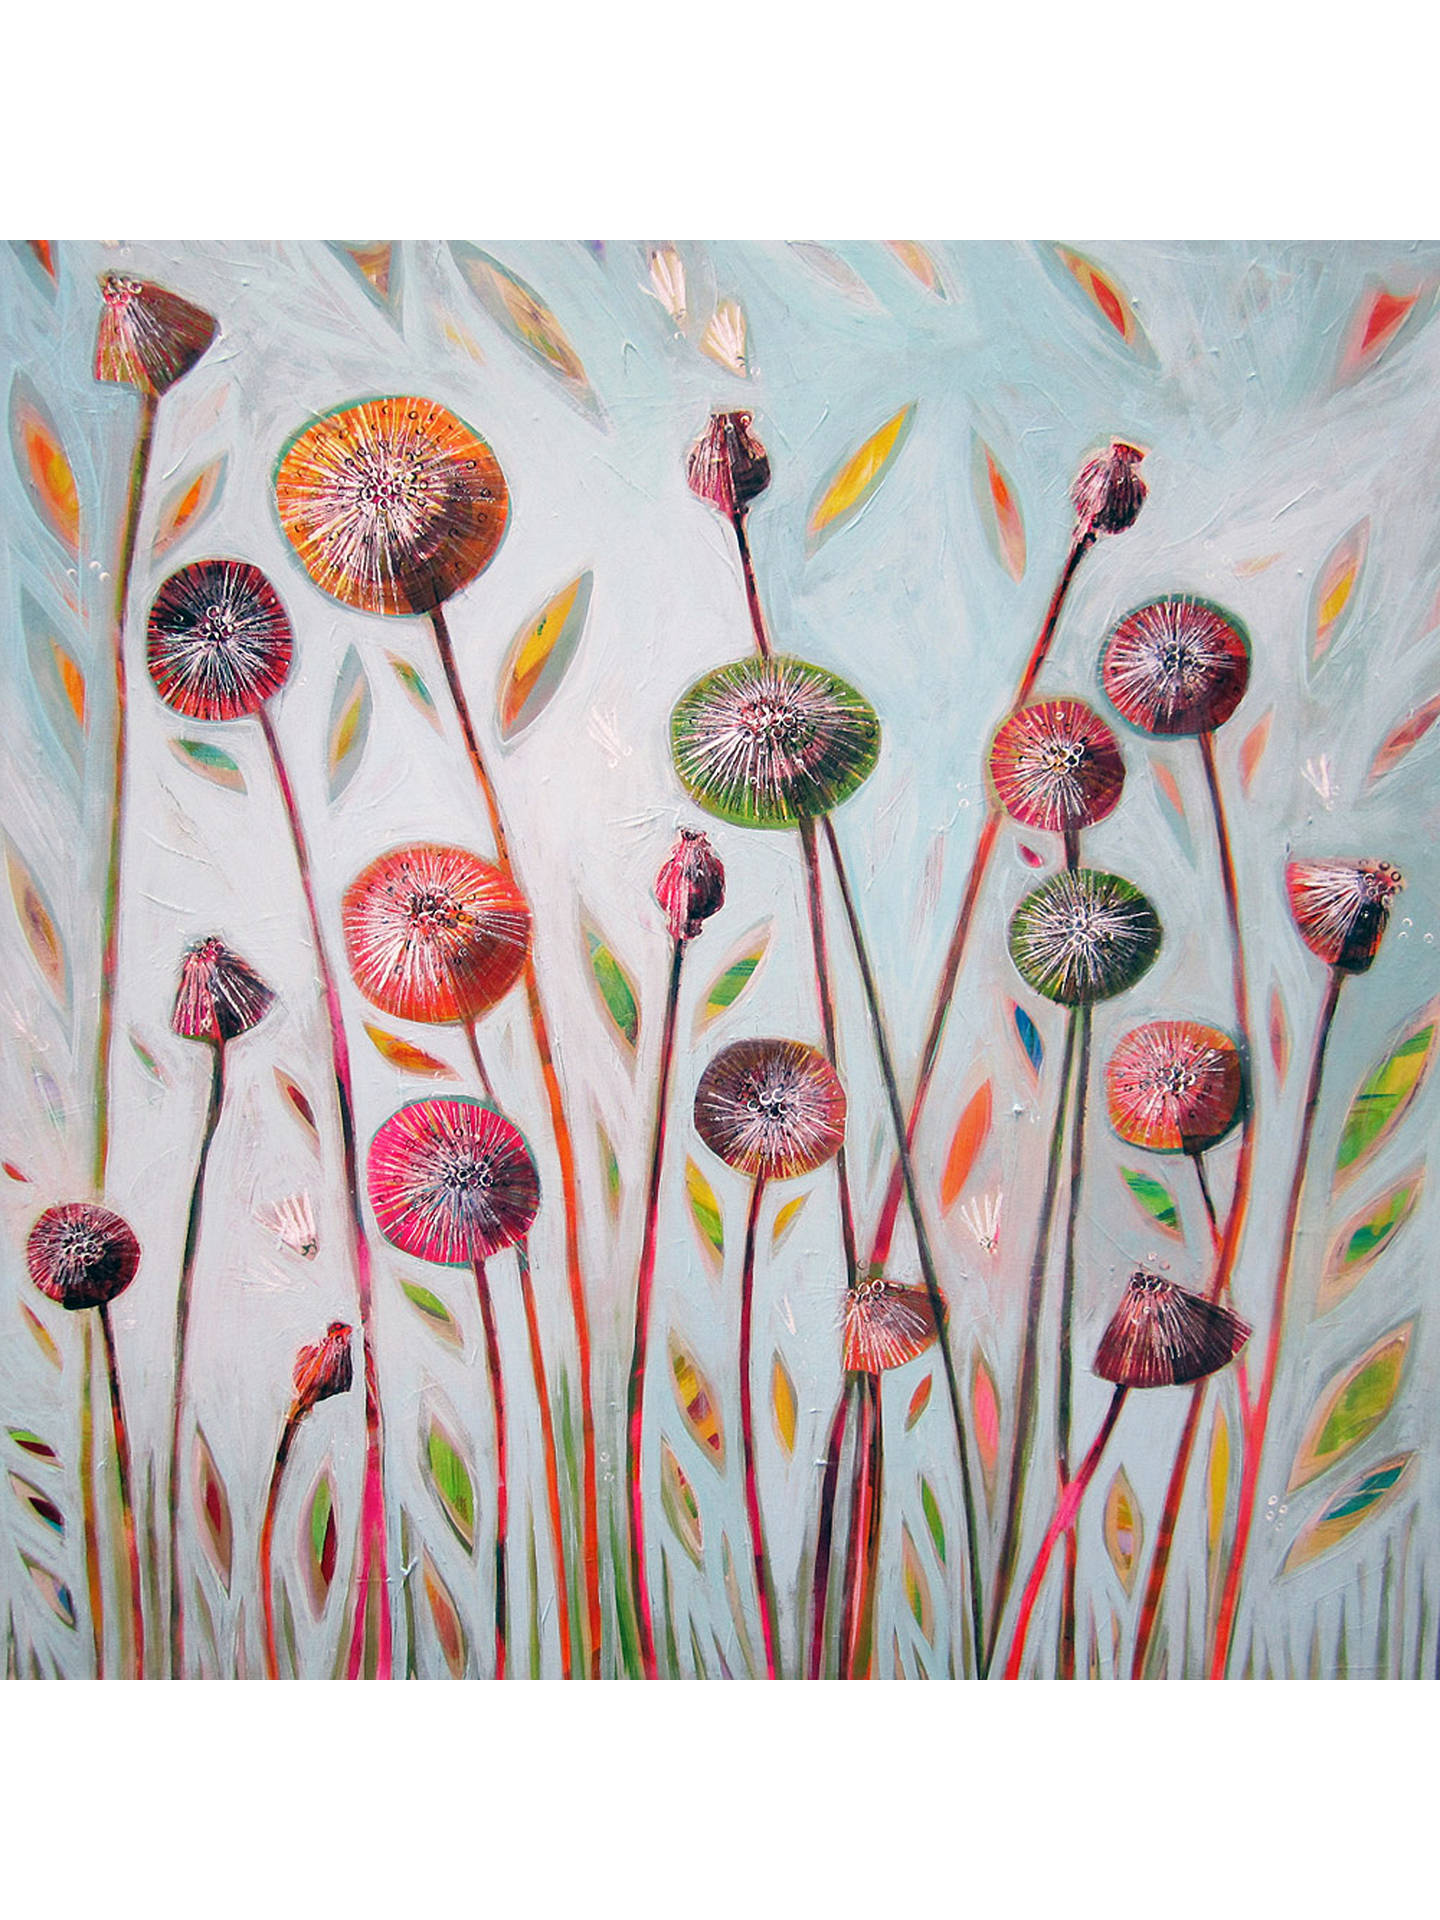 BuyShyama Ruffell - Dandelion Blue, Stretched Canvas, 110 x 110cm Online at johnlewis.com